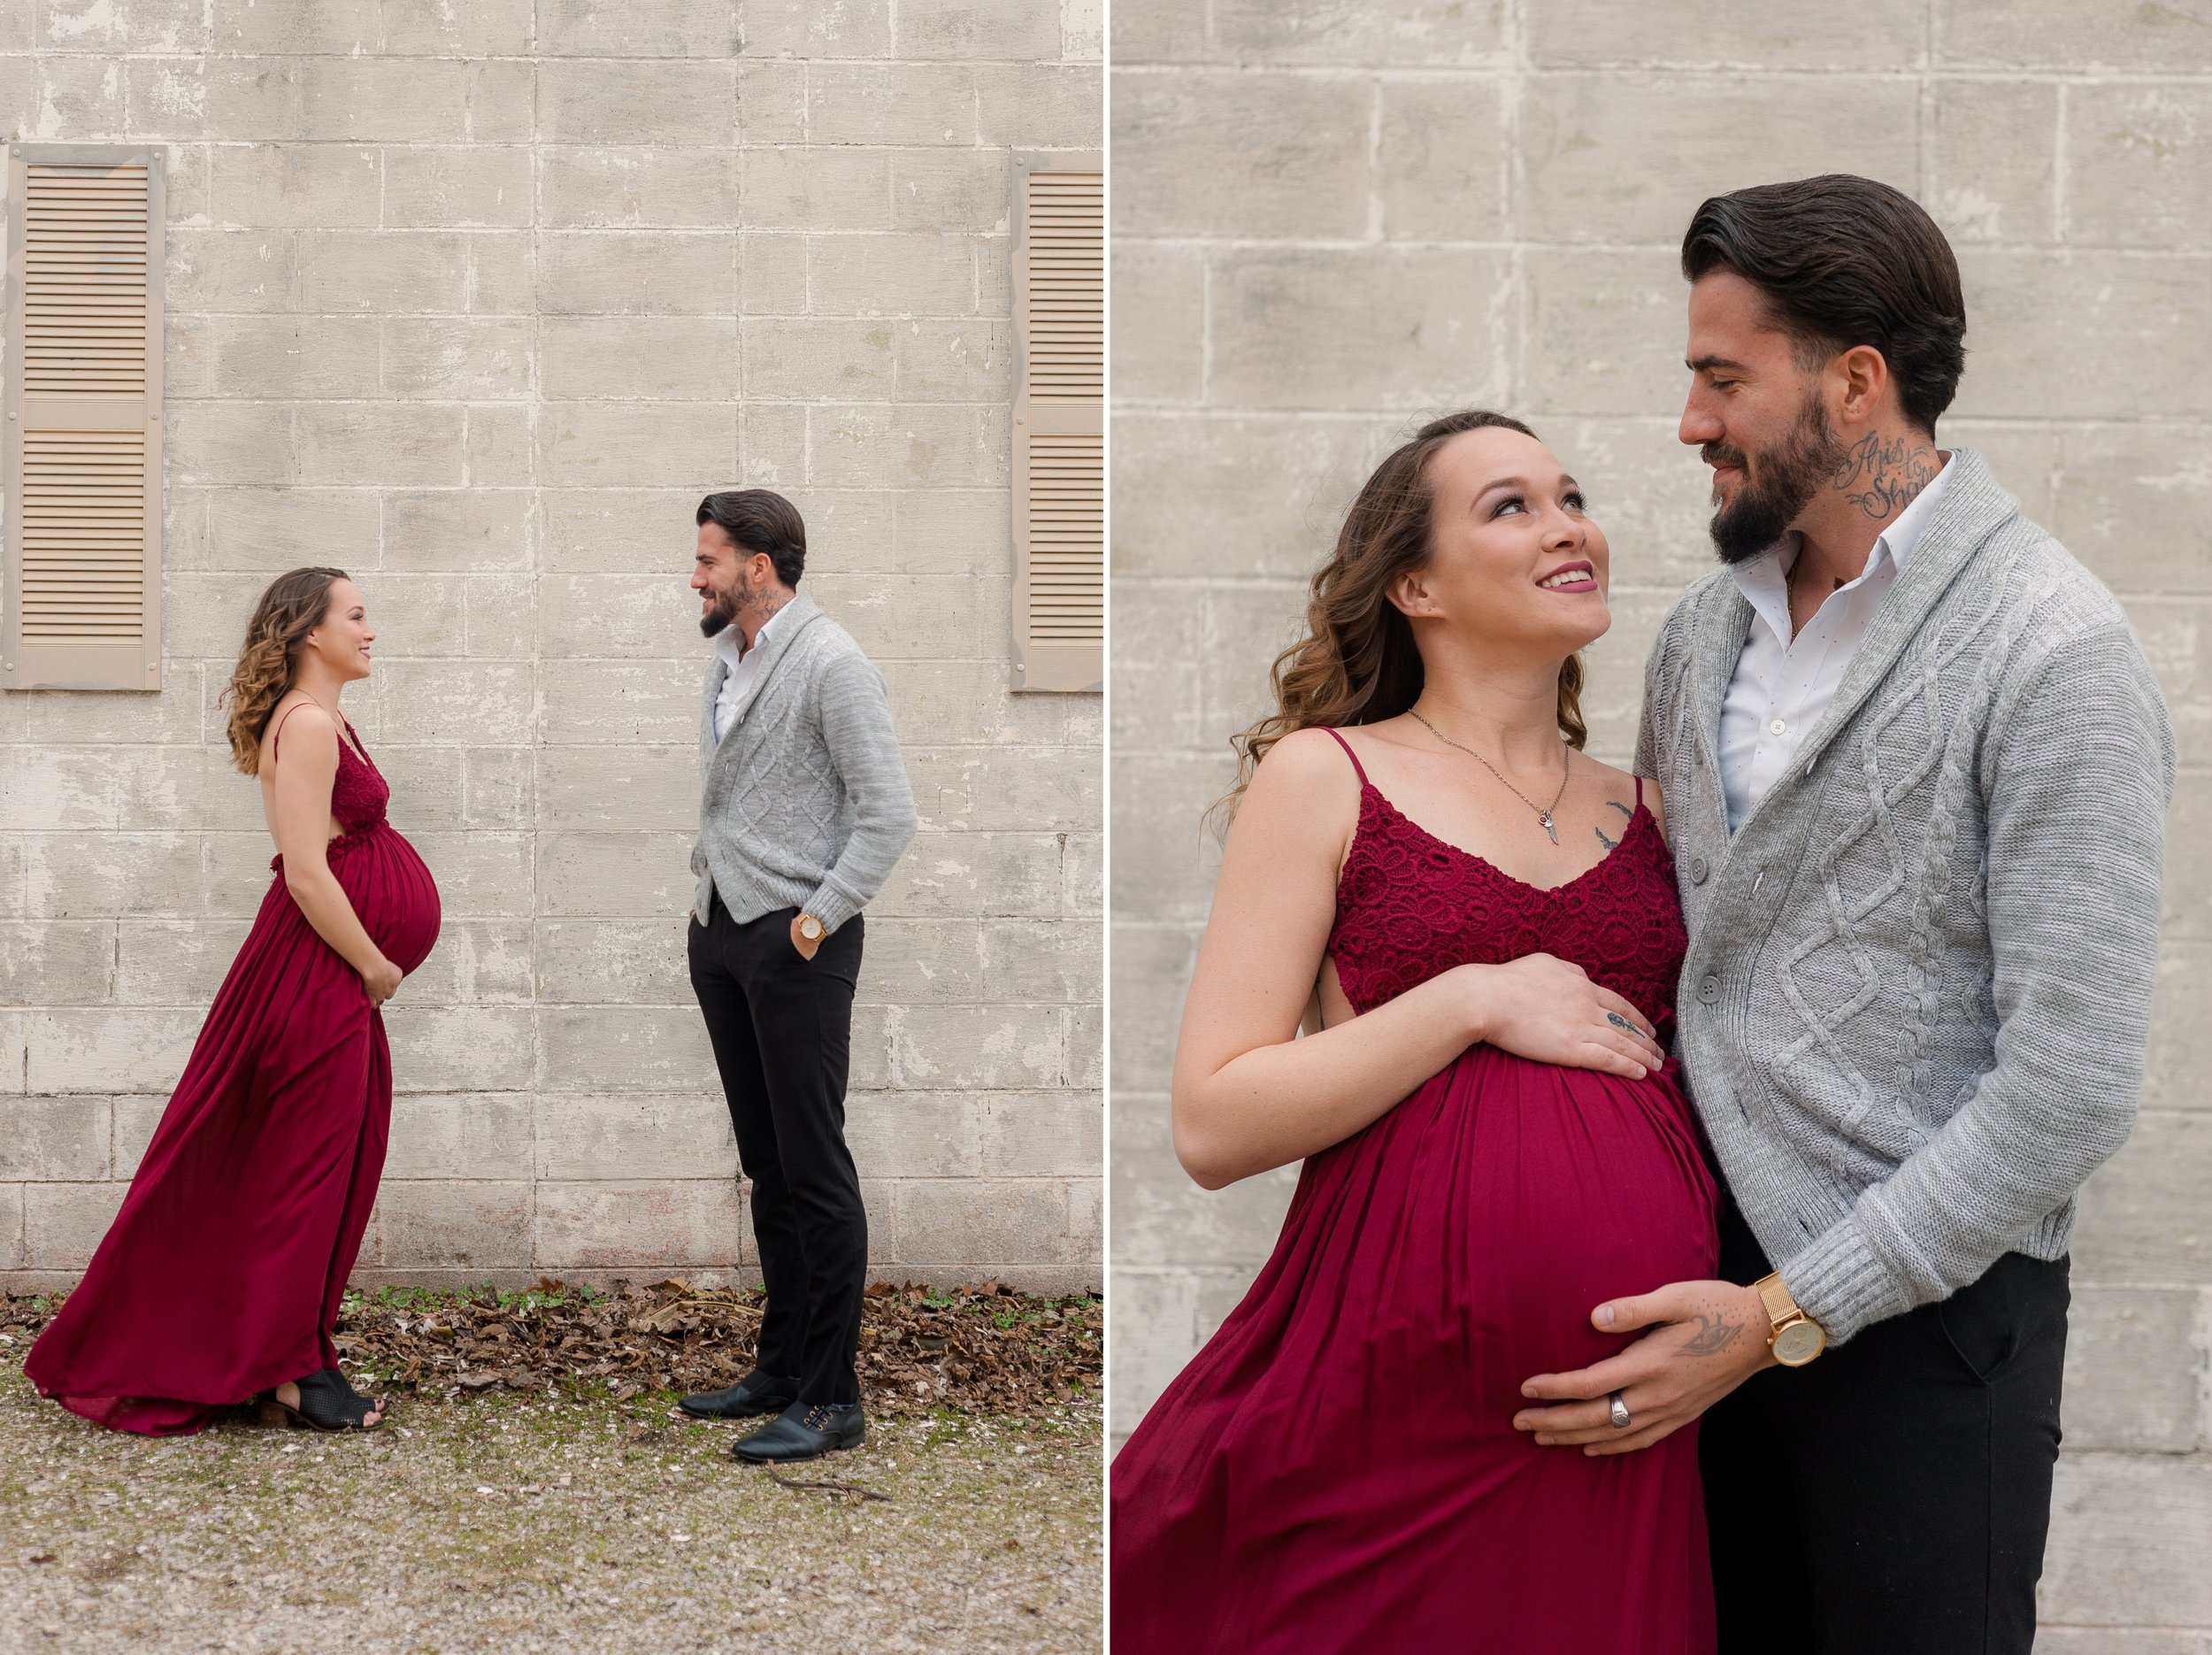 stlouis_maternity_couples_poses_photo_ideas_photography_travel_kansas_city_springfield_fortleonardwood_family_senior_d 1.jpg